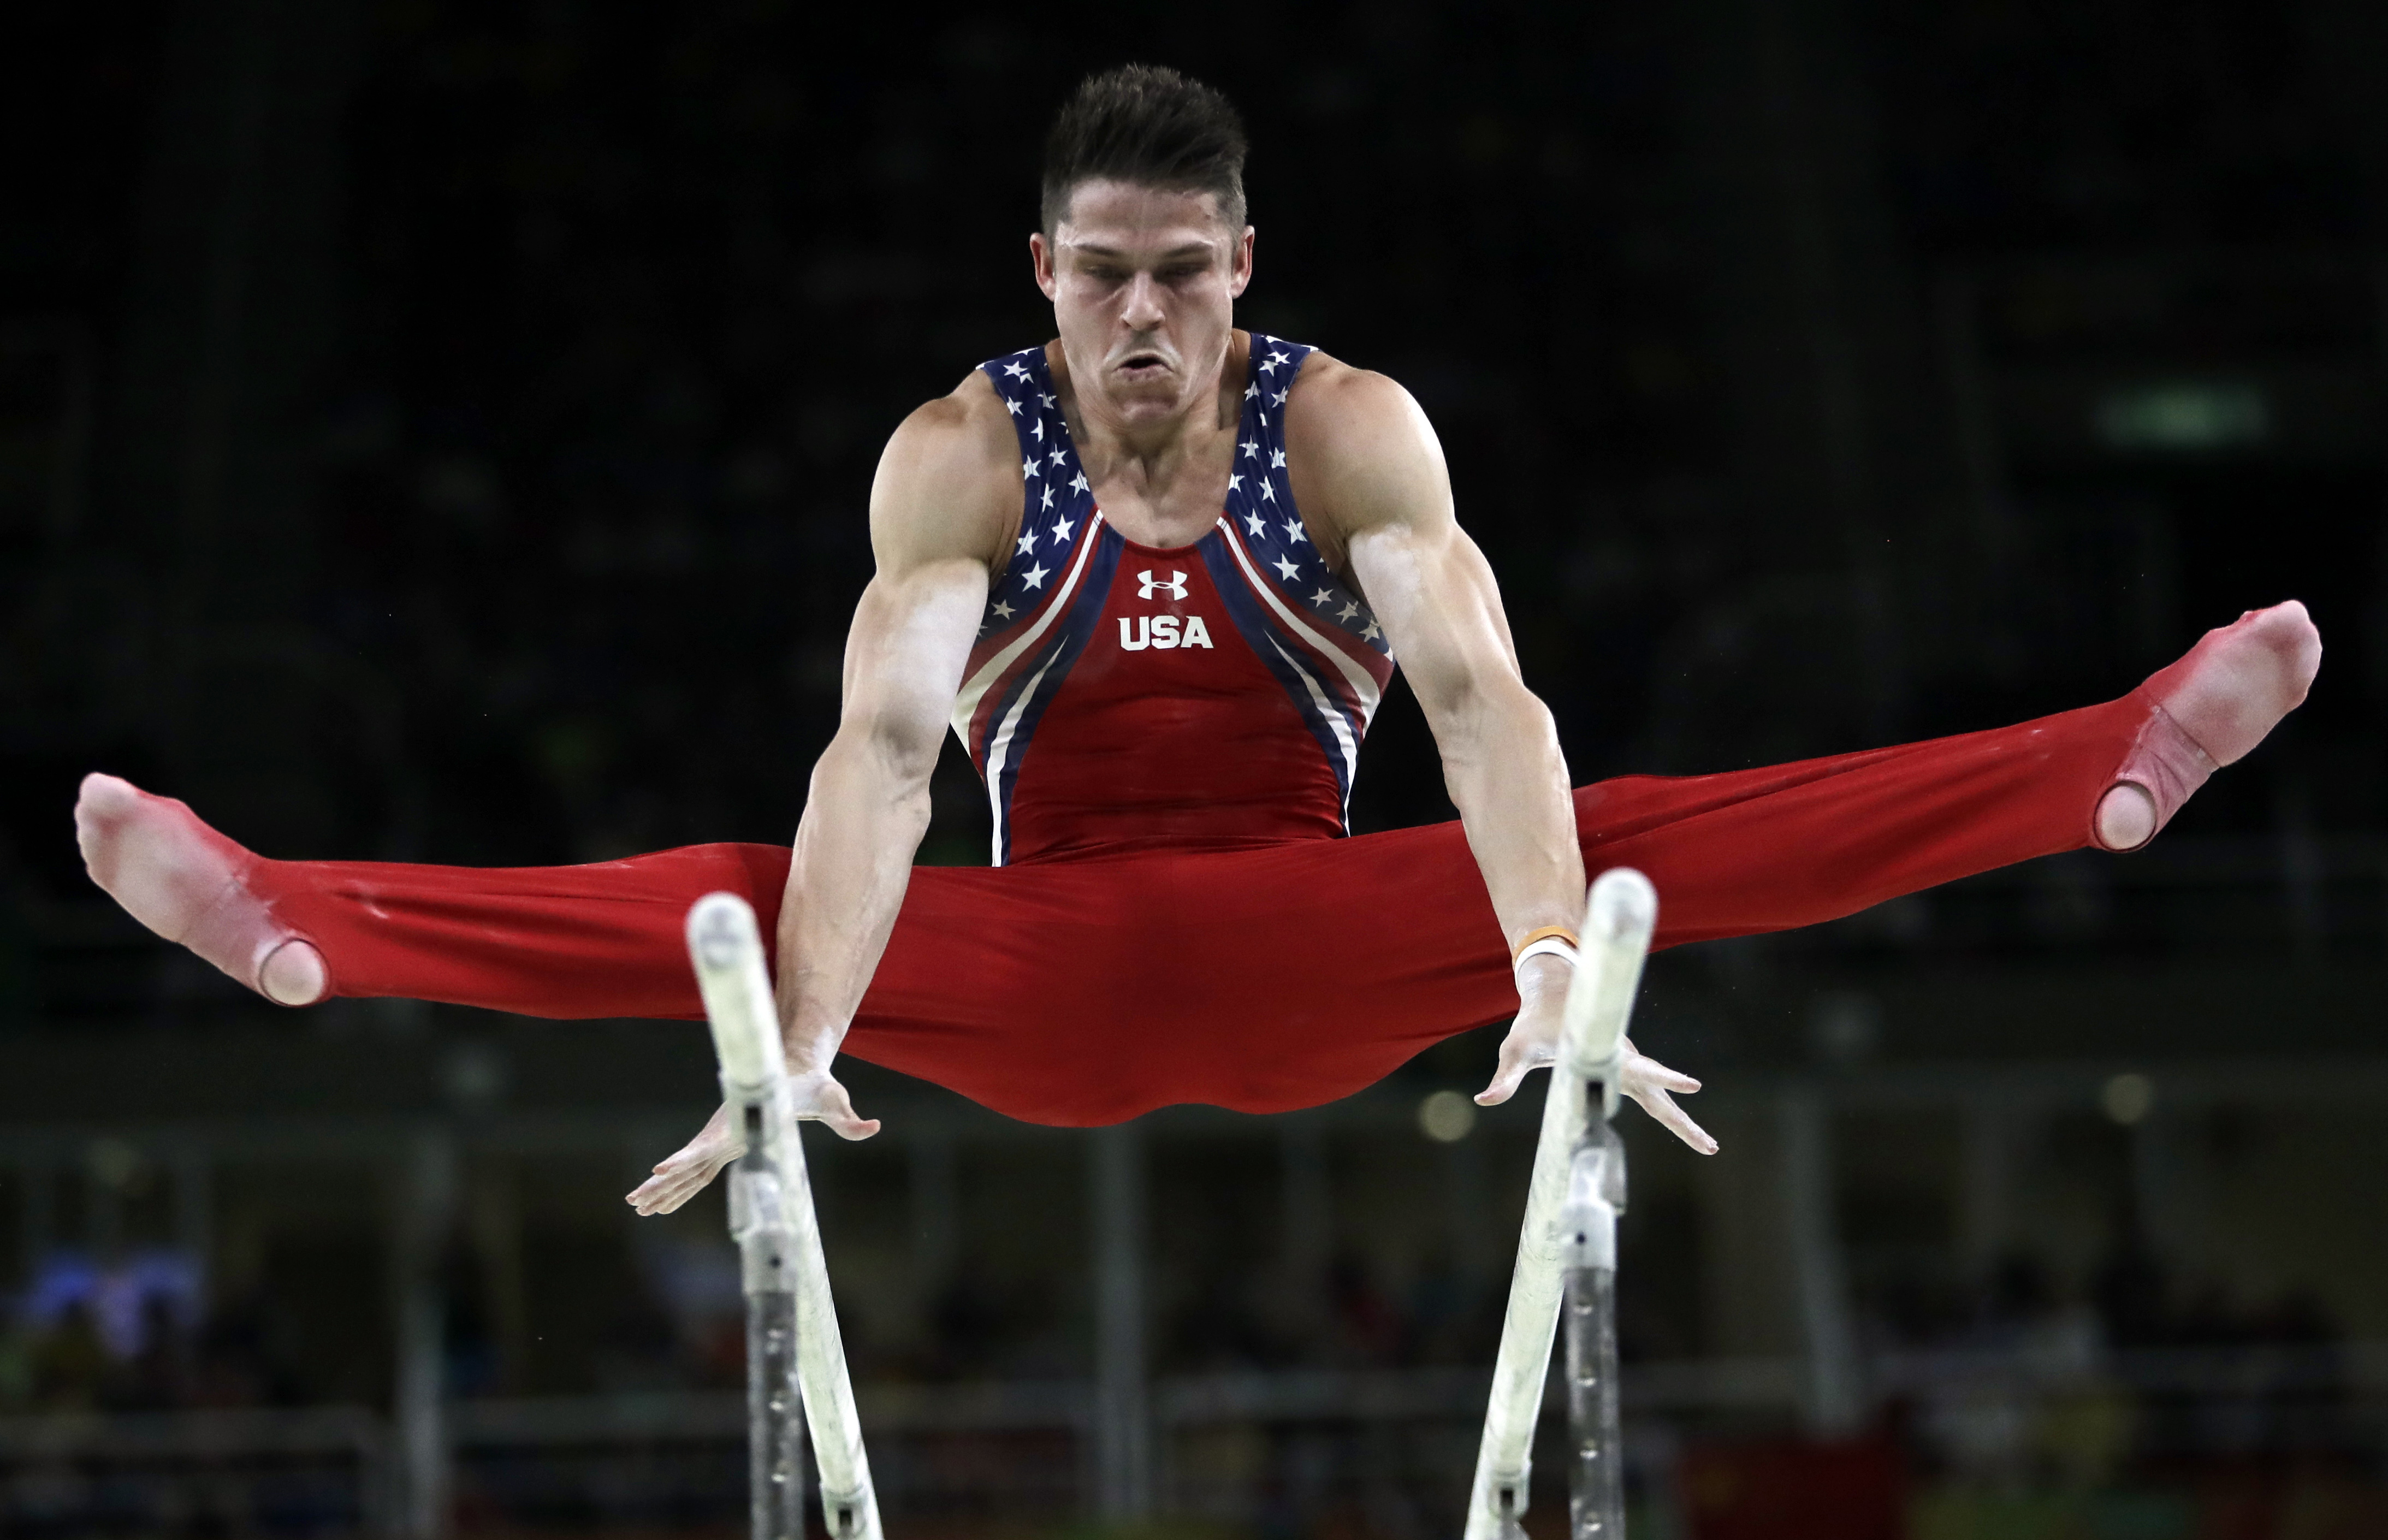 United States' Chris Brooks performs on the parallel bars during the artistic gymnastics men's team final at the 2016 Summer Olympics in Rio de Janeiro, Brazil, Monday, Aug. 8, 2016. (AP Photo/Julio Cortez)